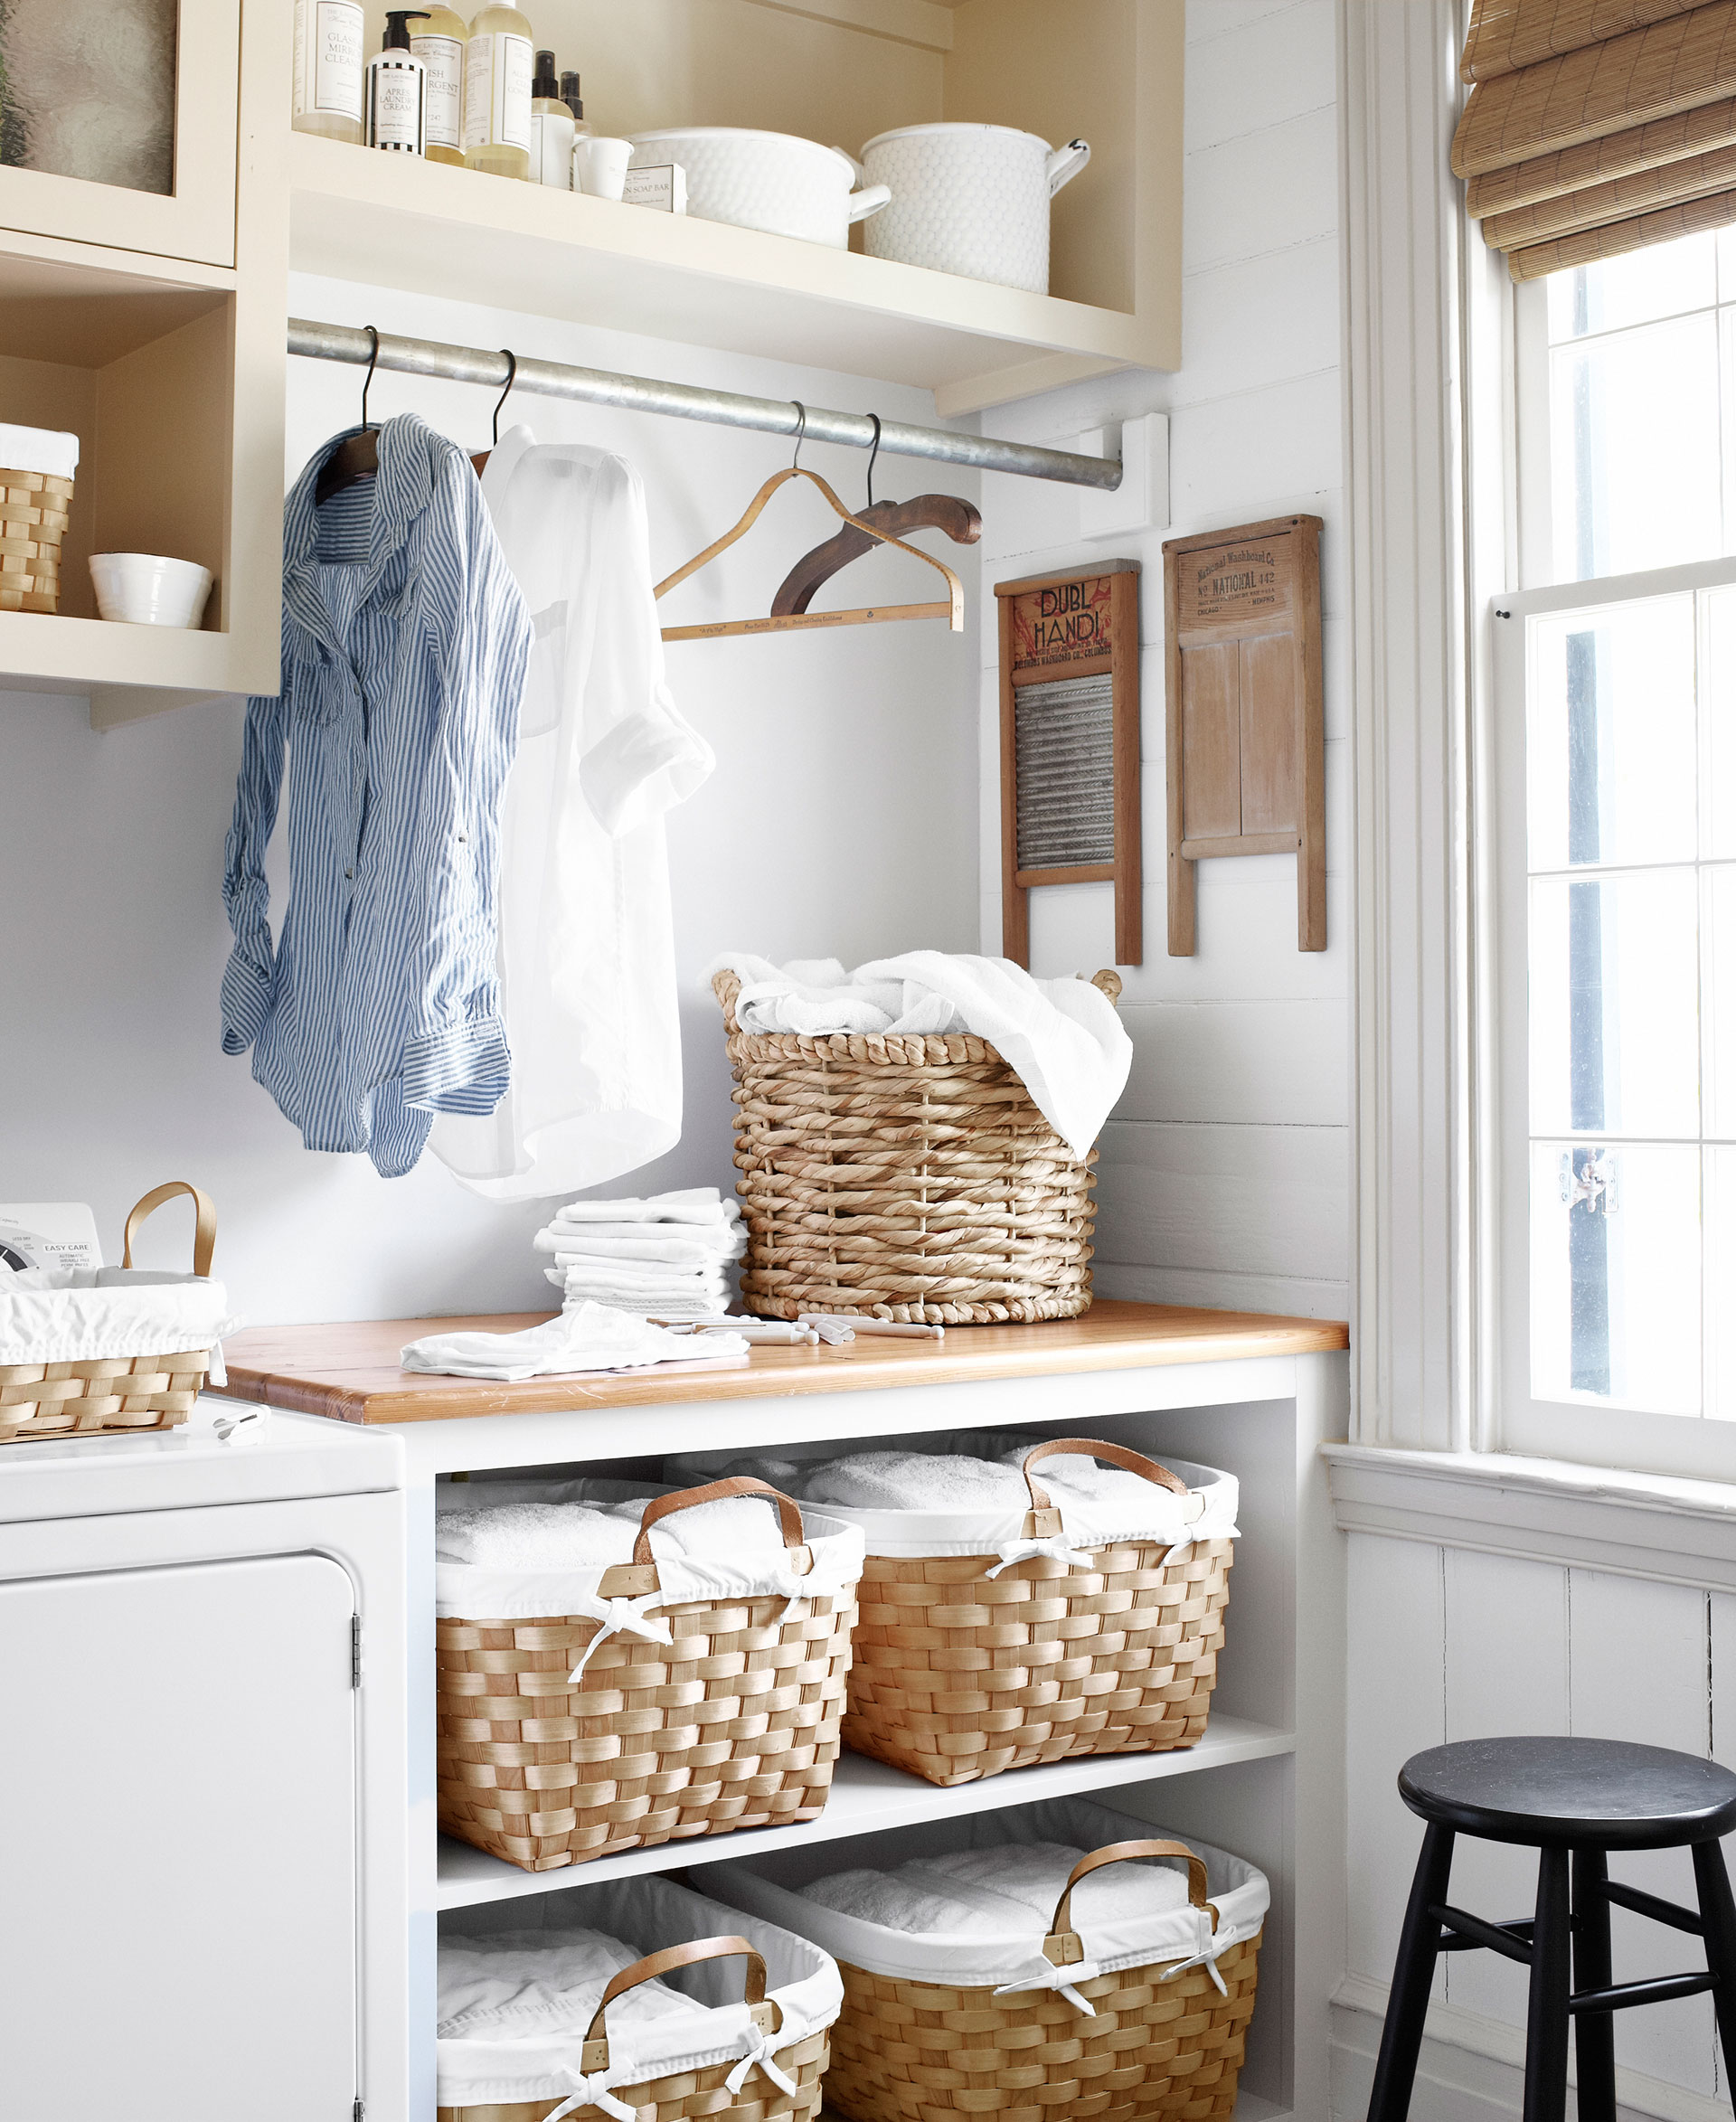 Mud room ideas decorating a mud or laundry room amipublicfo Gallery